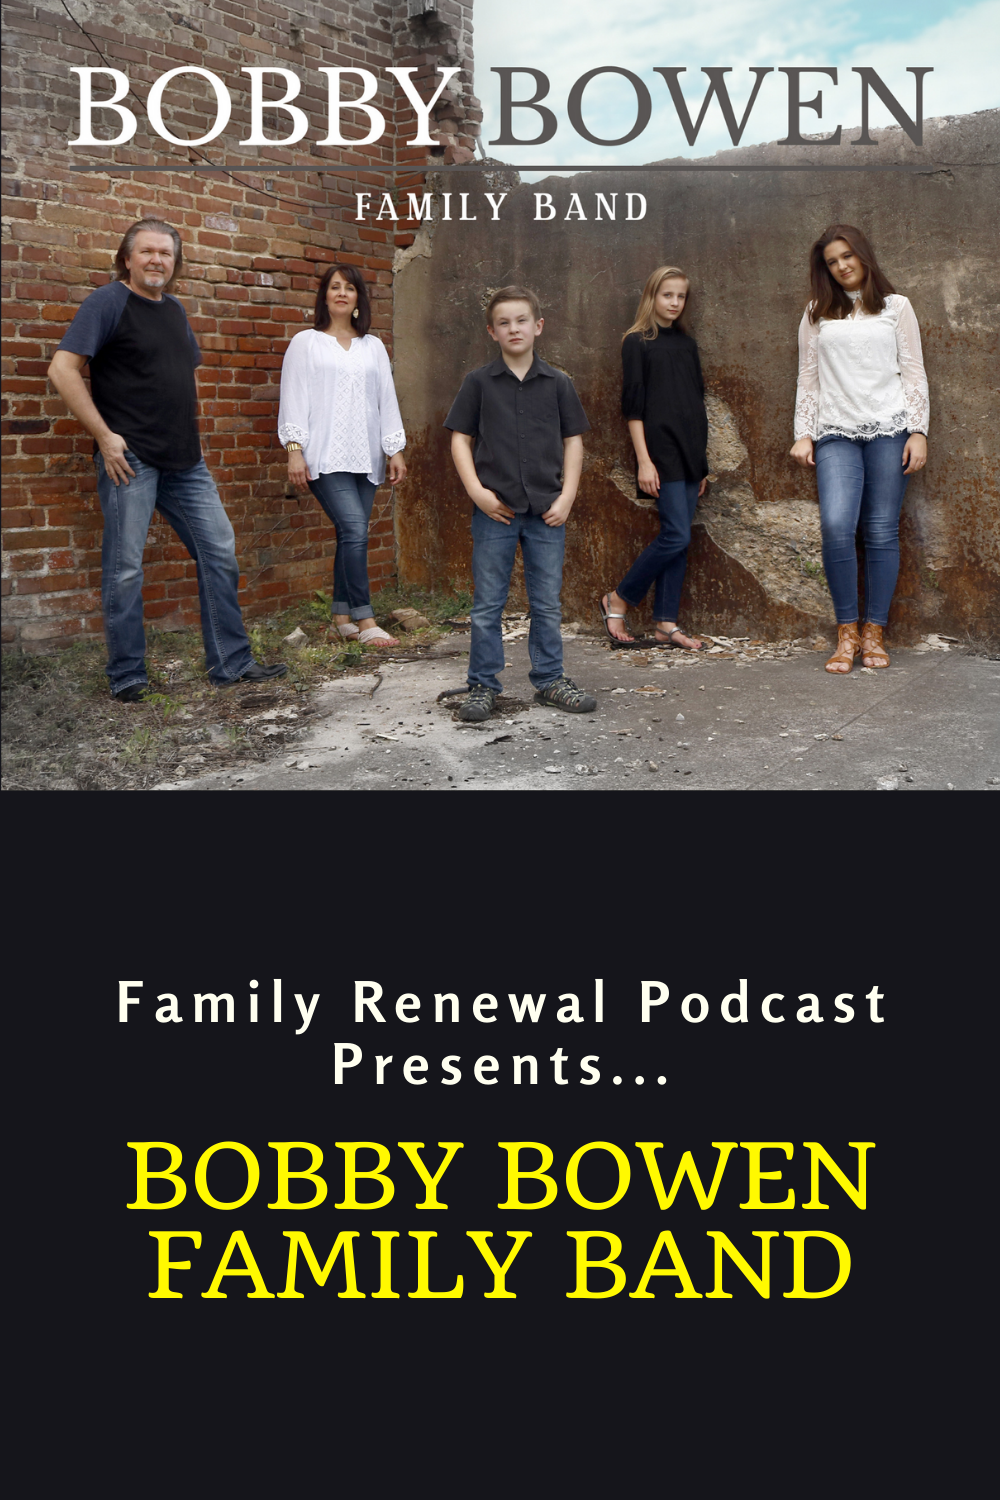 In this interview, Israel Wayne discusses with Bobby his transition from being part of a band full of guys to traveling together and singing with his family.